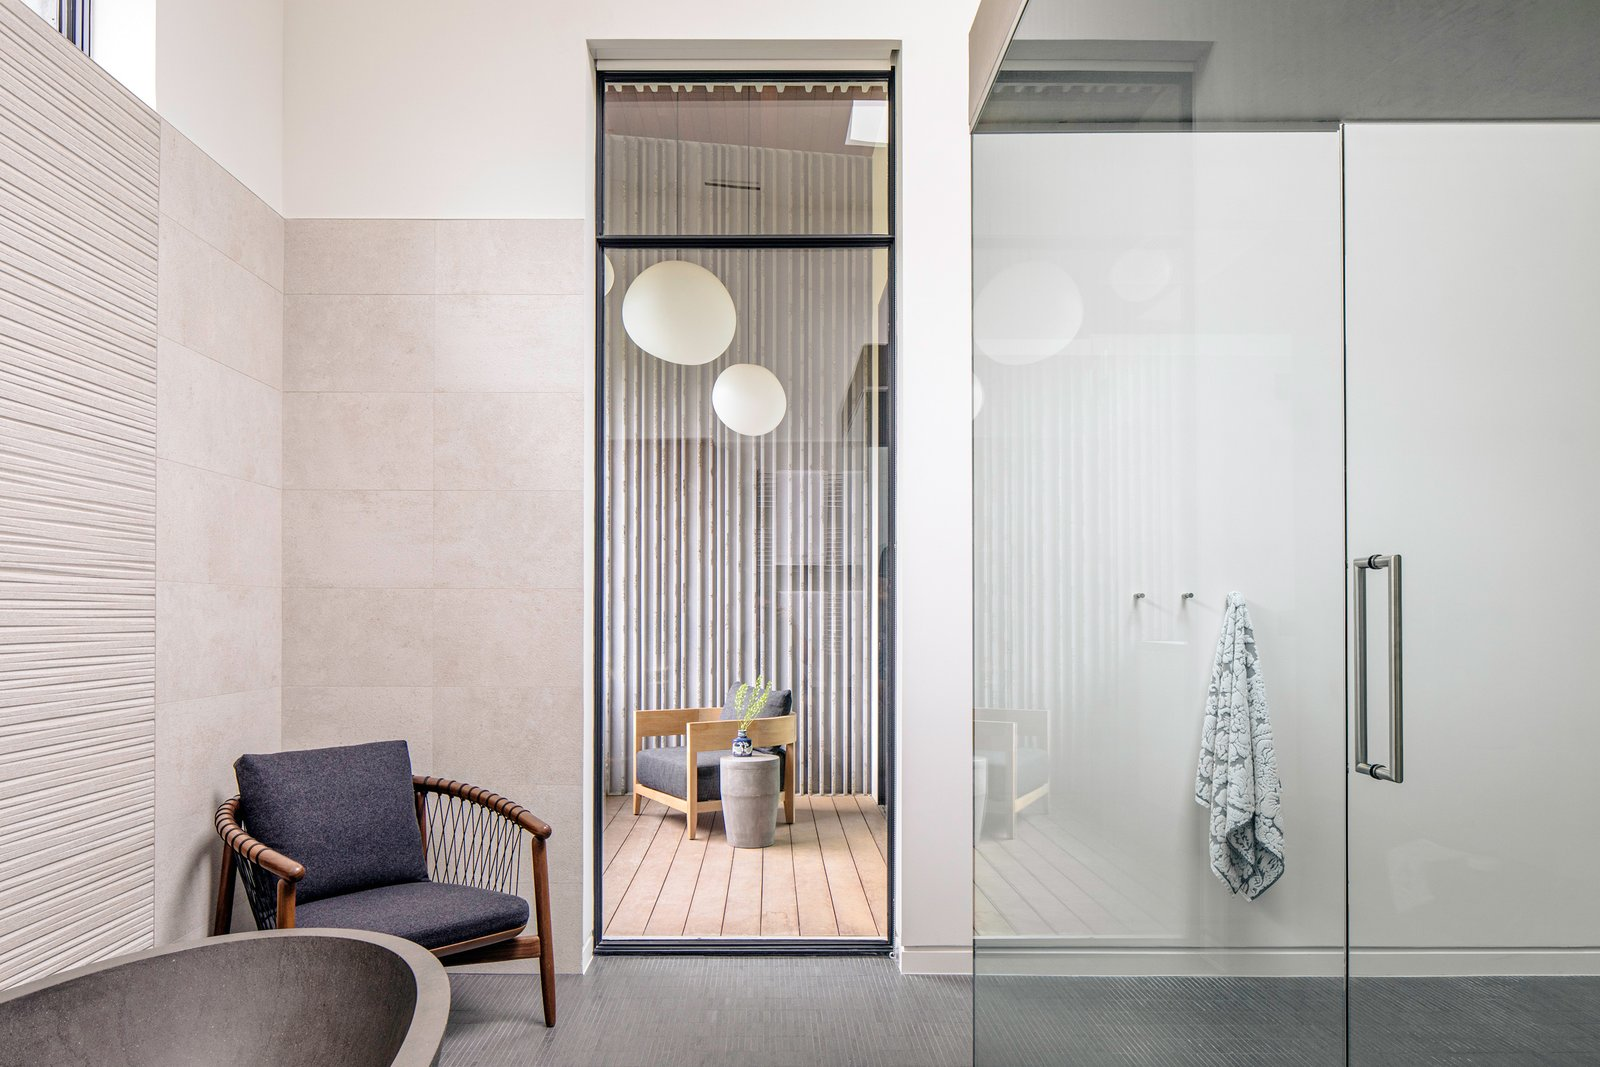 Bath Room, Porcelain Tile Wall, Freestanding Tub, and Enclosed Shower Taula House by M Gooden Design  |  Master Bathroom  Taula House by M Gooden Design